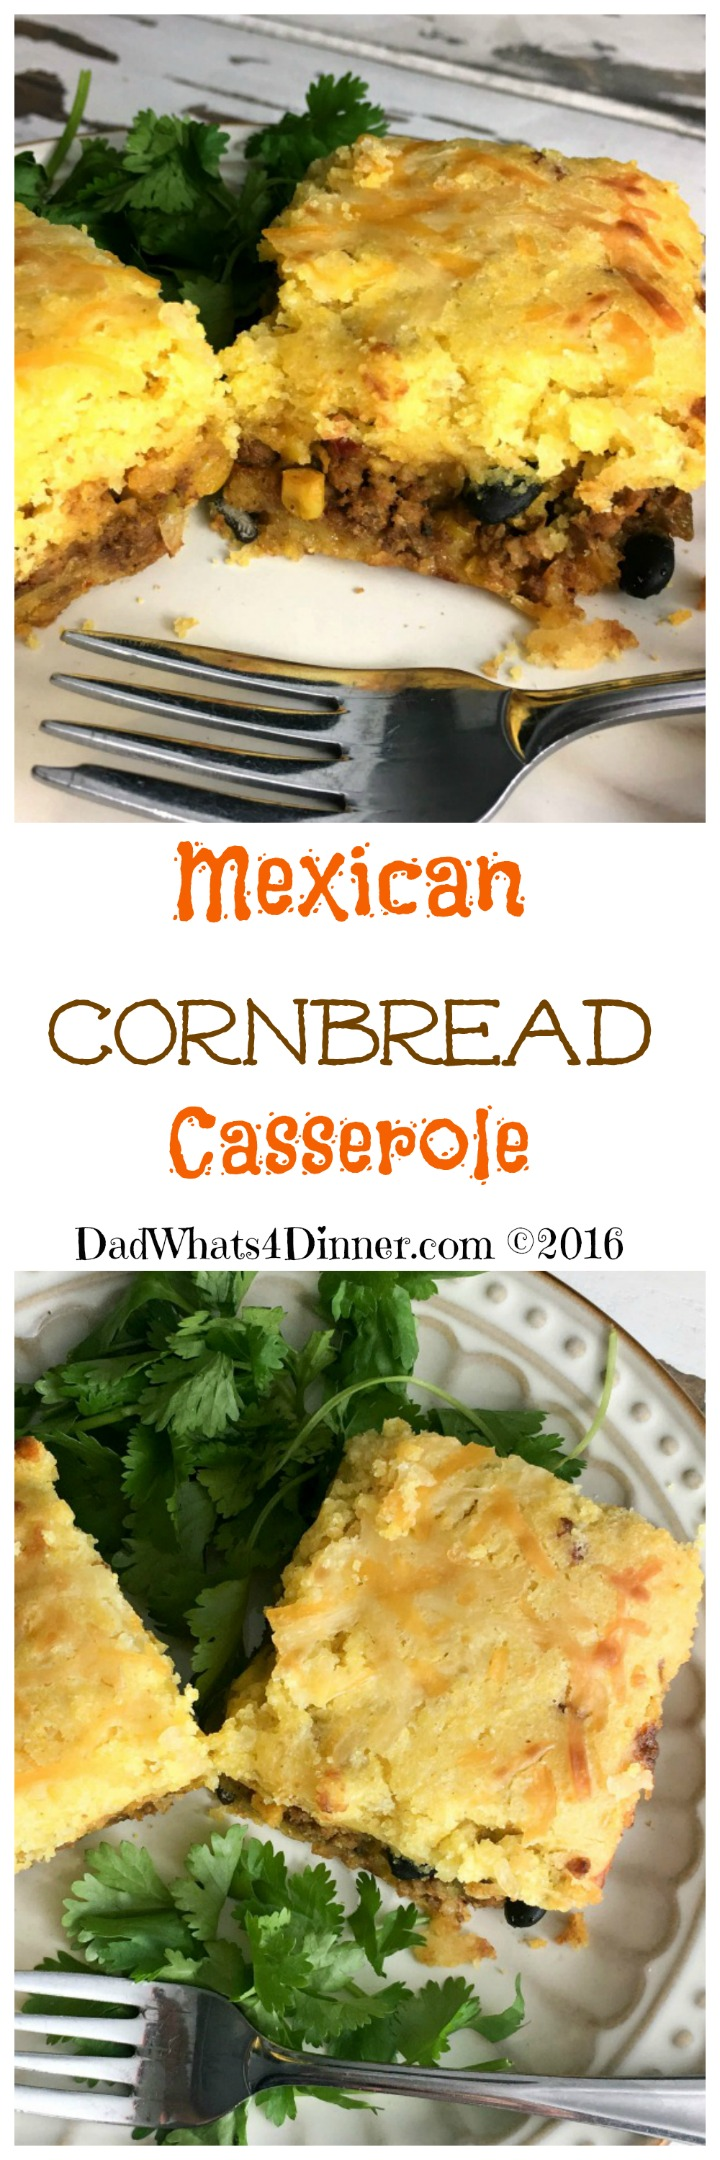 Great fusion between Southern and Mexican comfort food.Mexican Cornbread Casserole is super easy to make and your kids will love it.